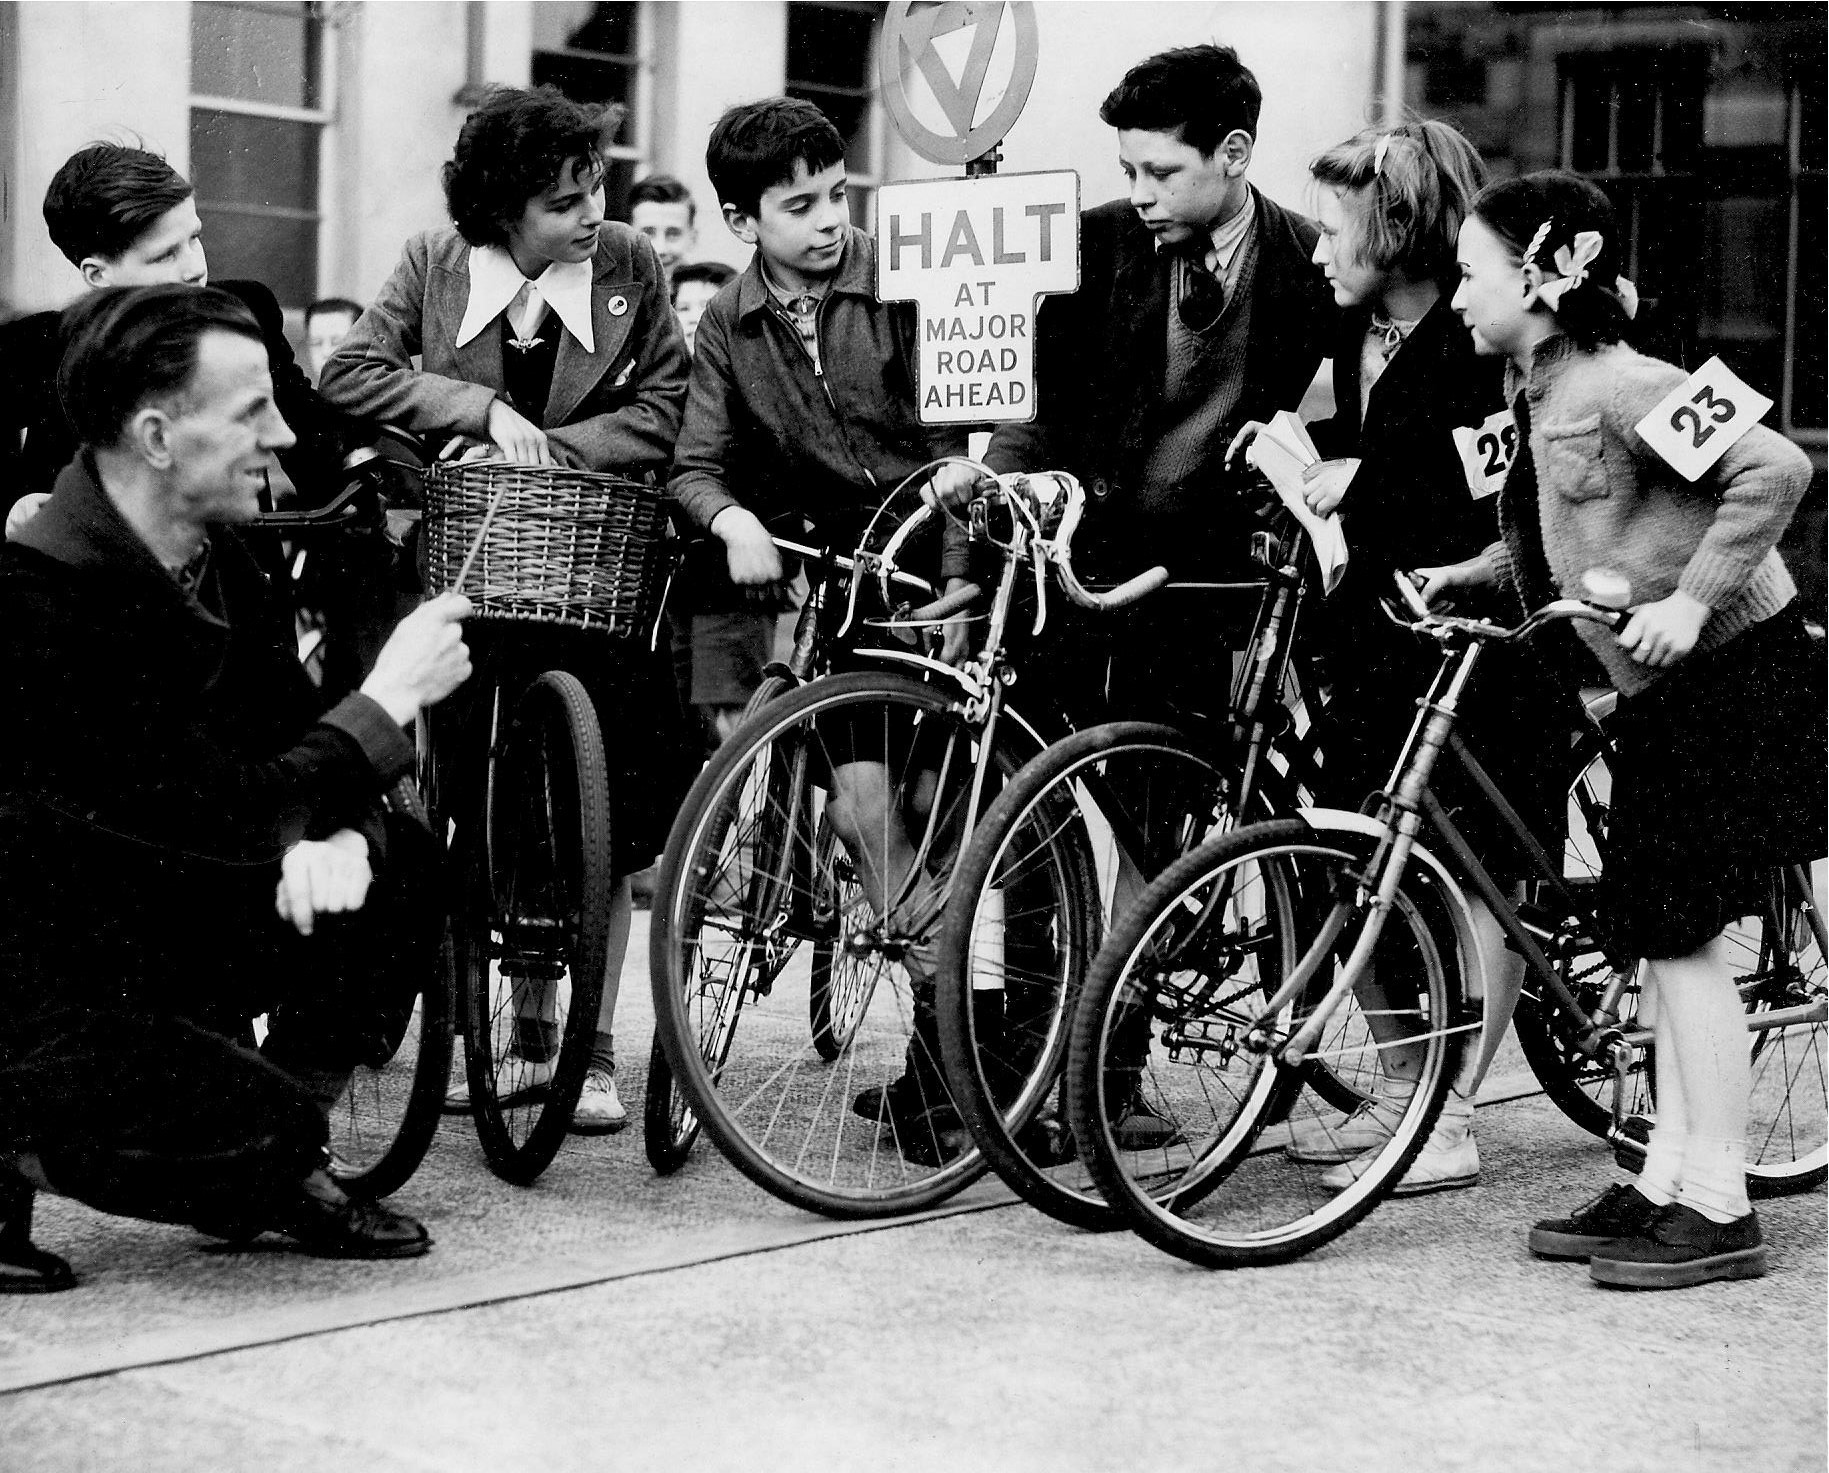 Glasgow memories: Bike lessons at school and a problem on Duke Street...